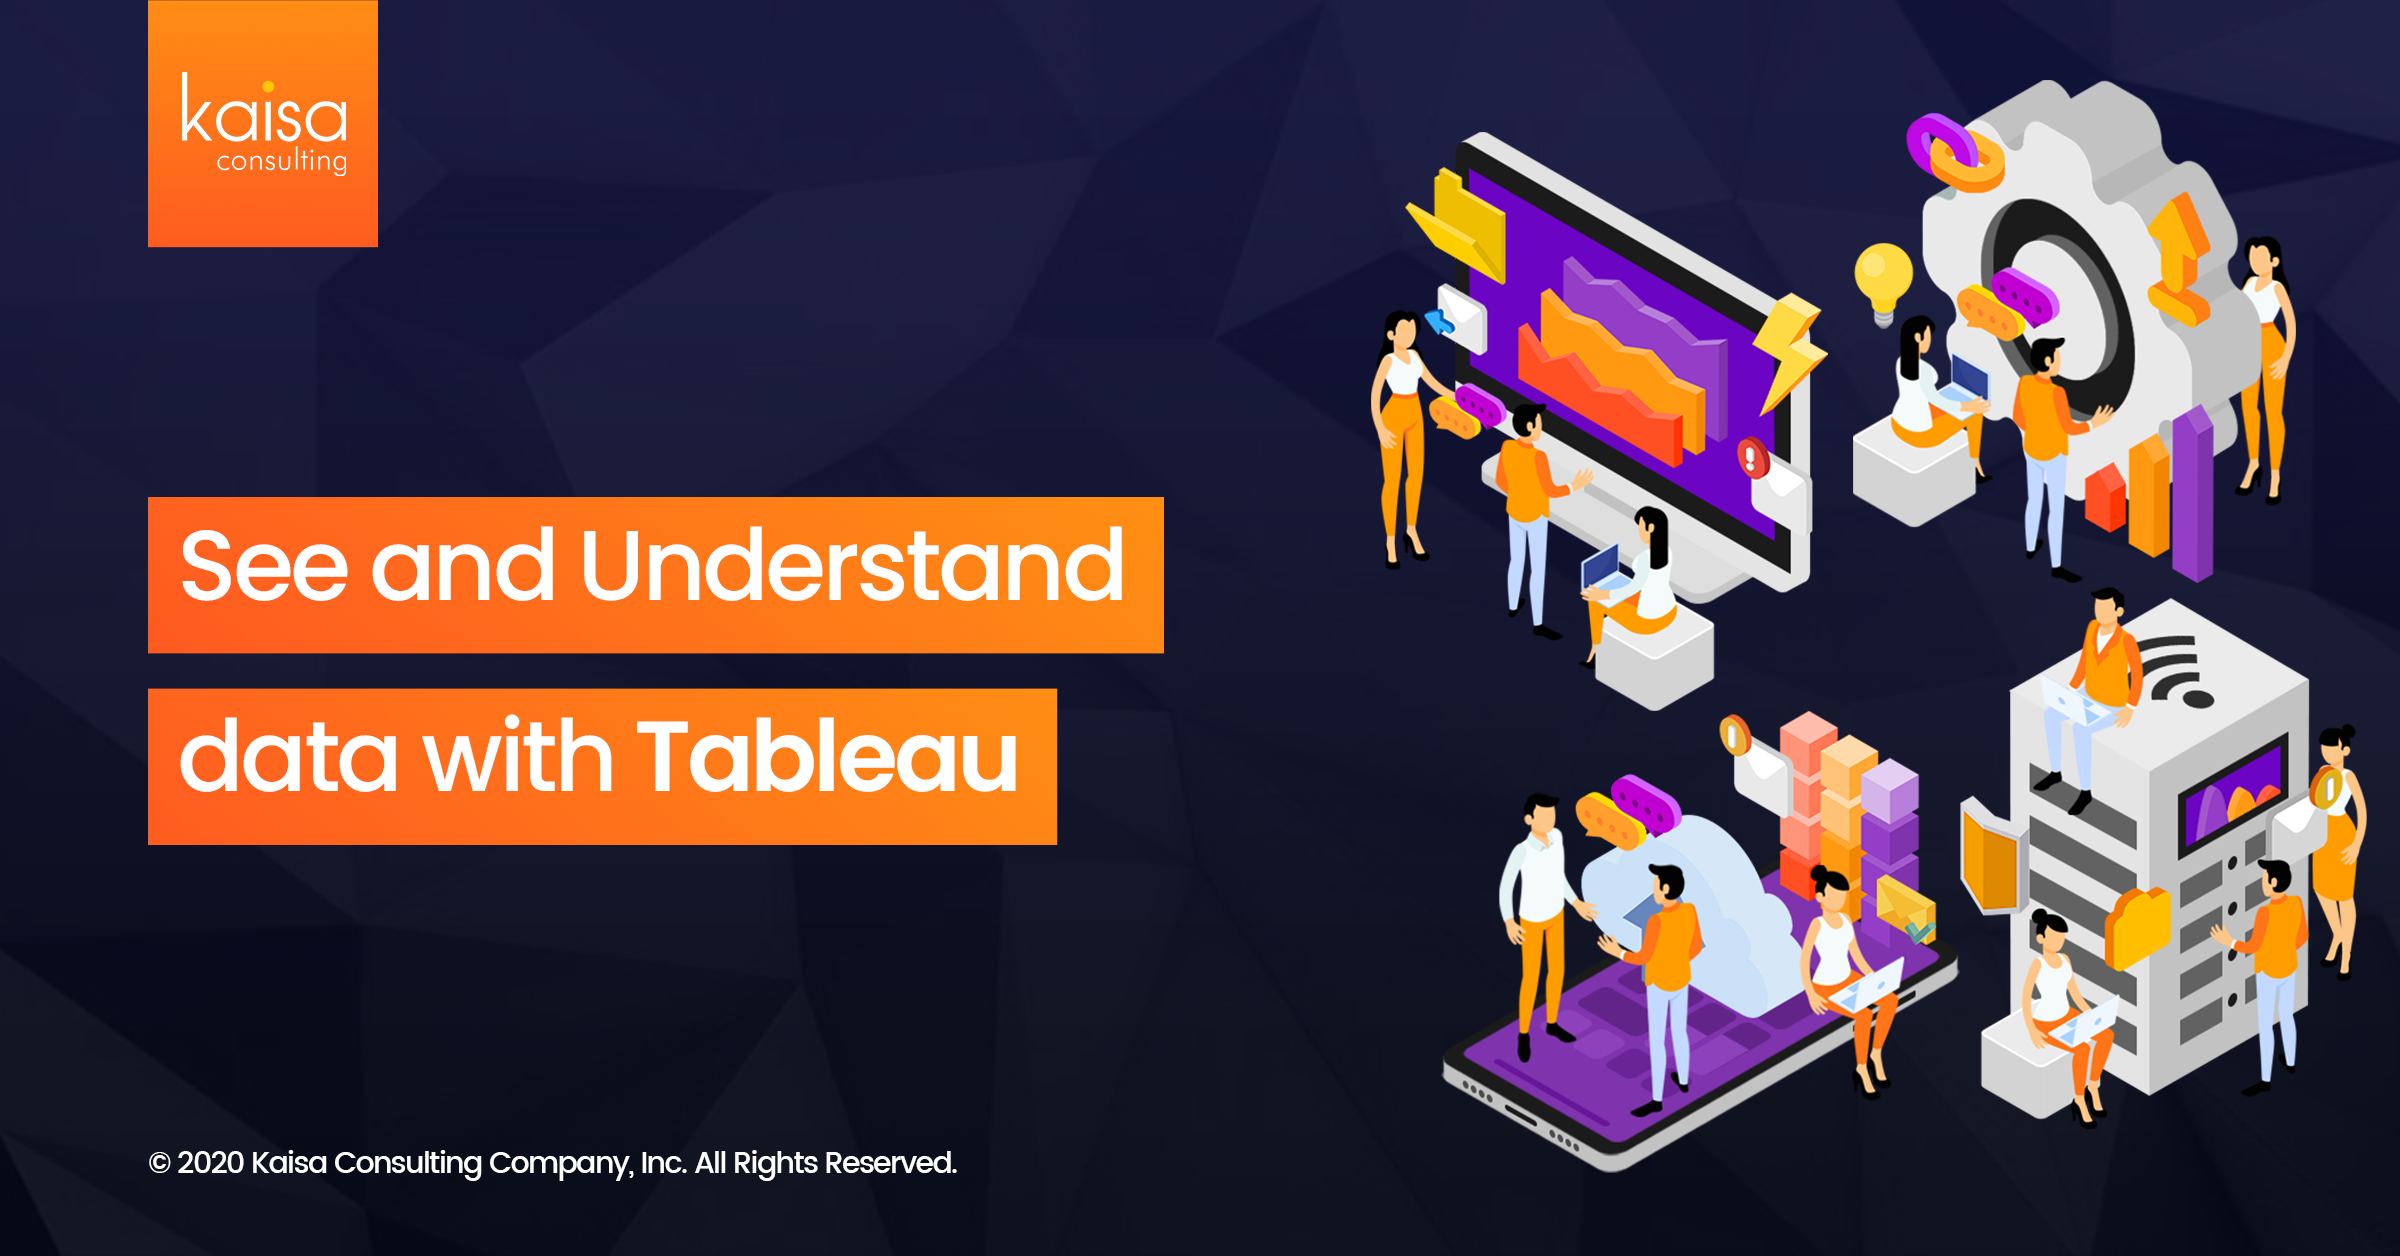 https://www.kaisa.com/wp-content/uploads/2020/01/Tableau-Article-Ads.png